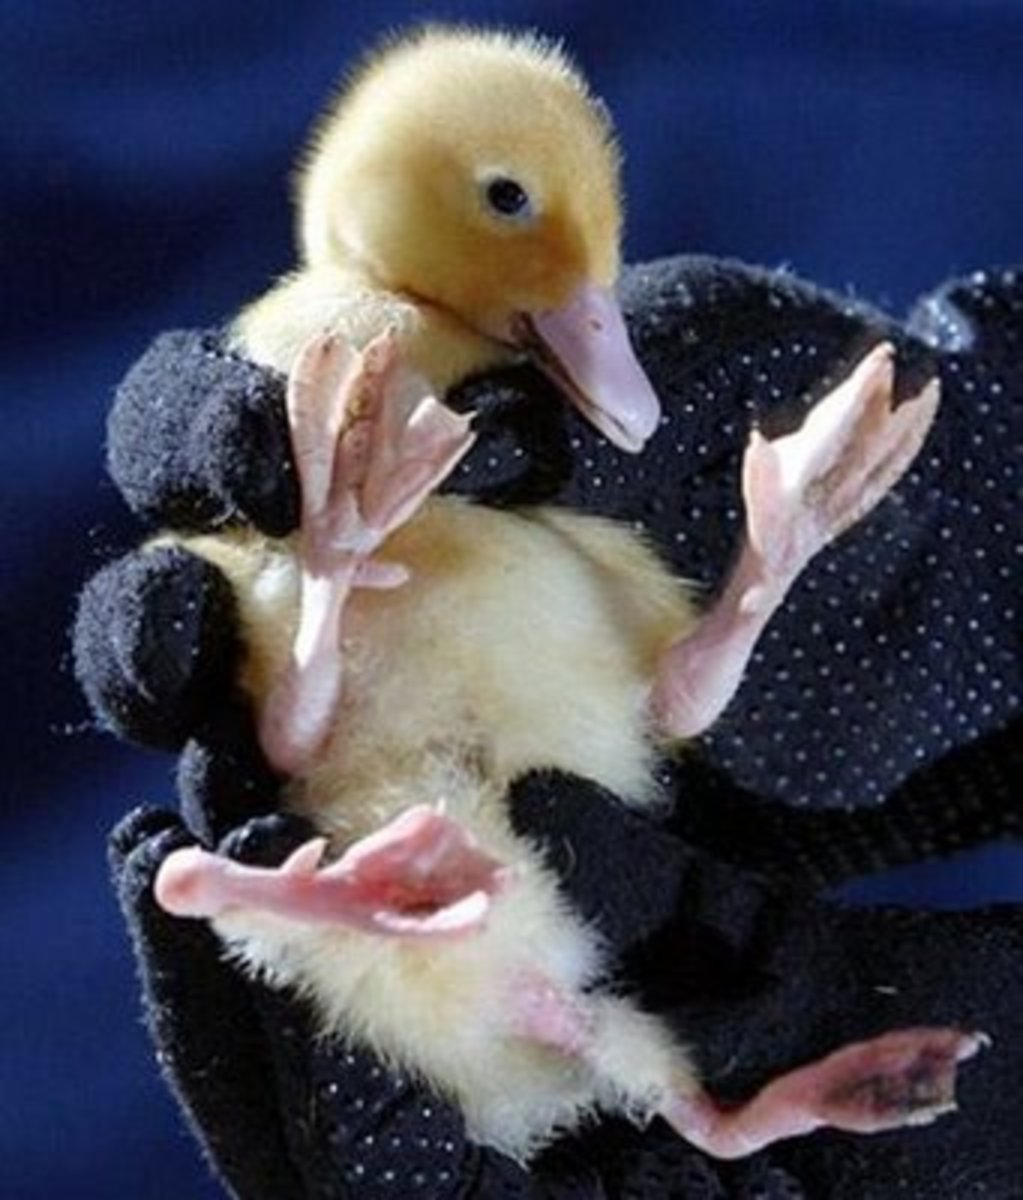 Young duckling with asymmetry conflicts bred from a preferred line in order to create better egg-laying productions.